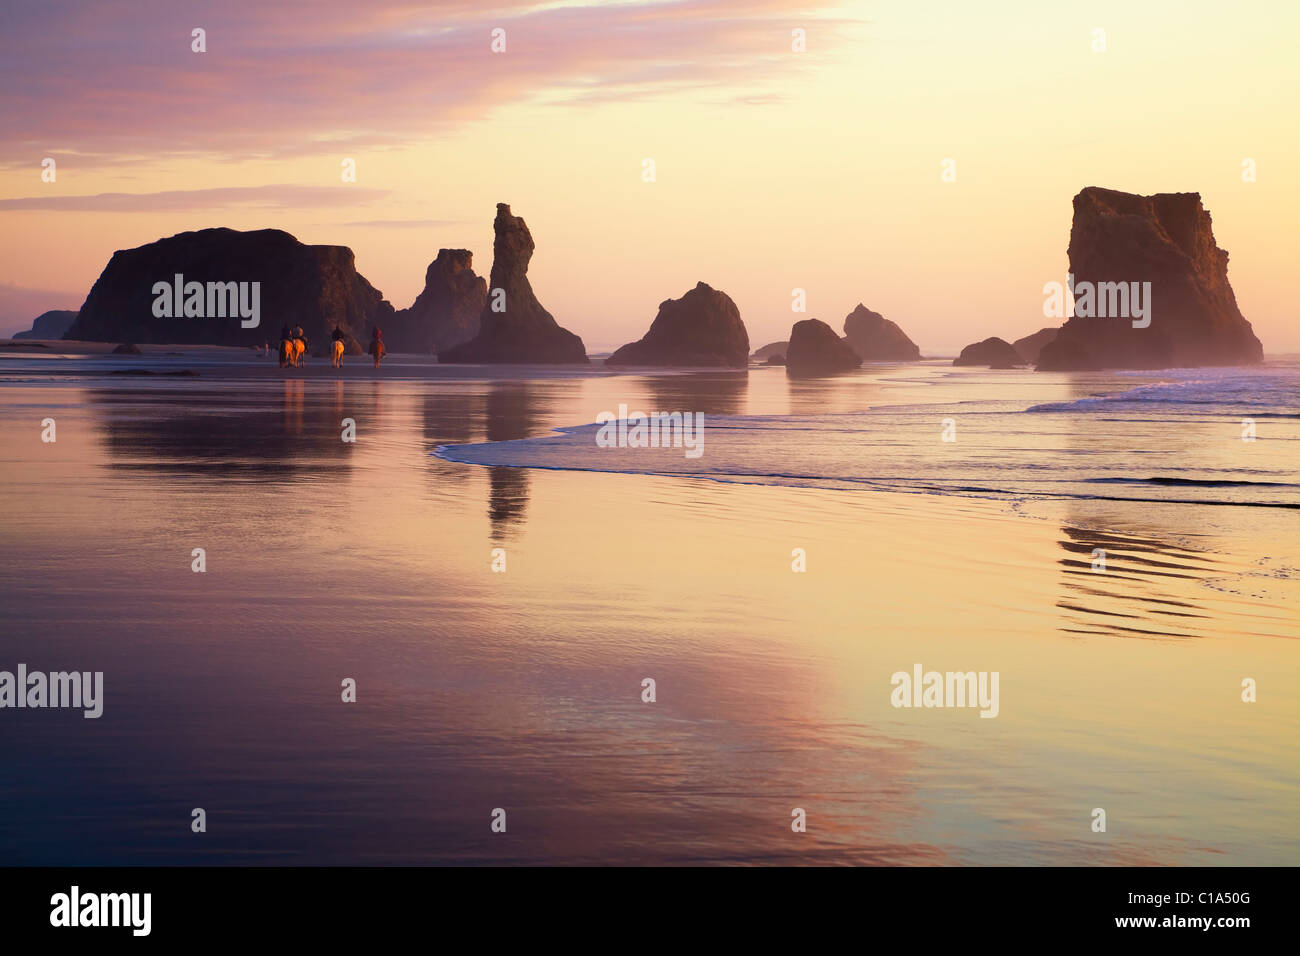 Tourists riding horses on pacific ocean beach in golden sunset, Haystack rocks, cloud reflections in wet sand at Stock Photo